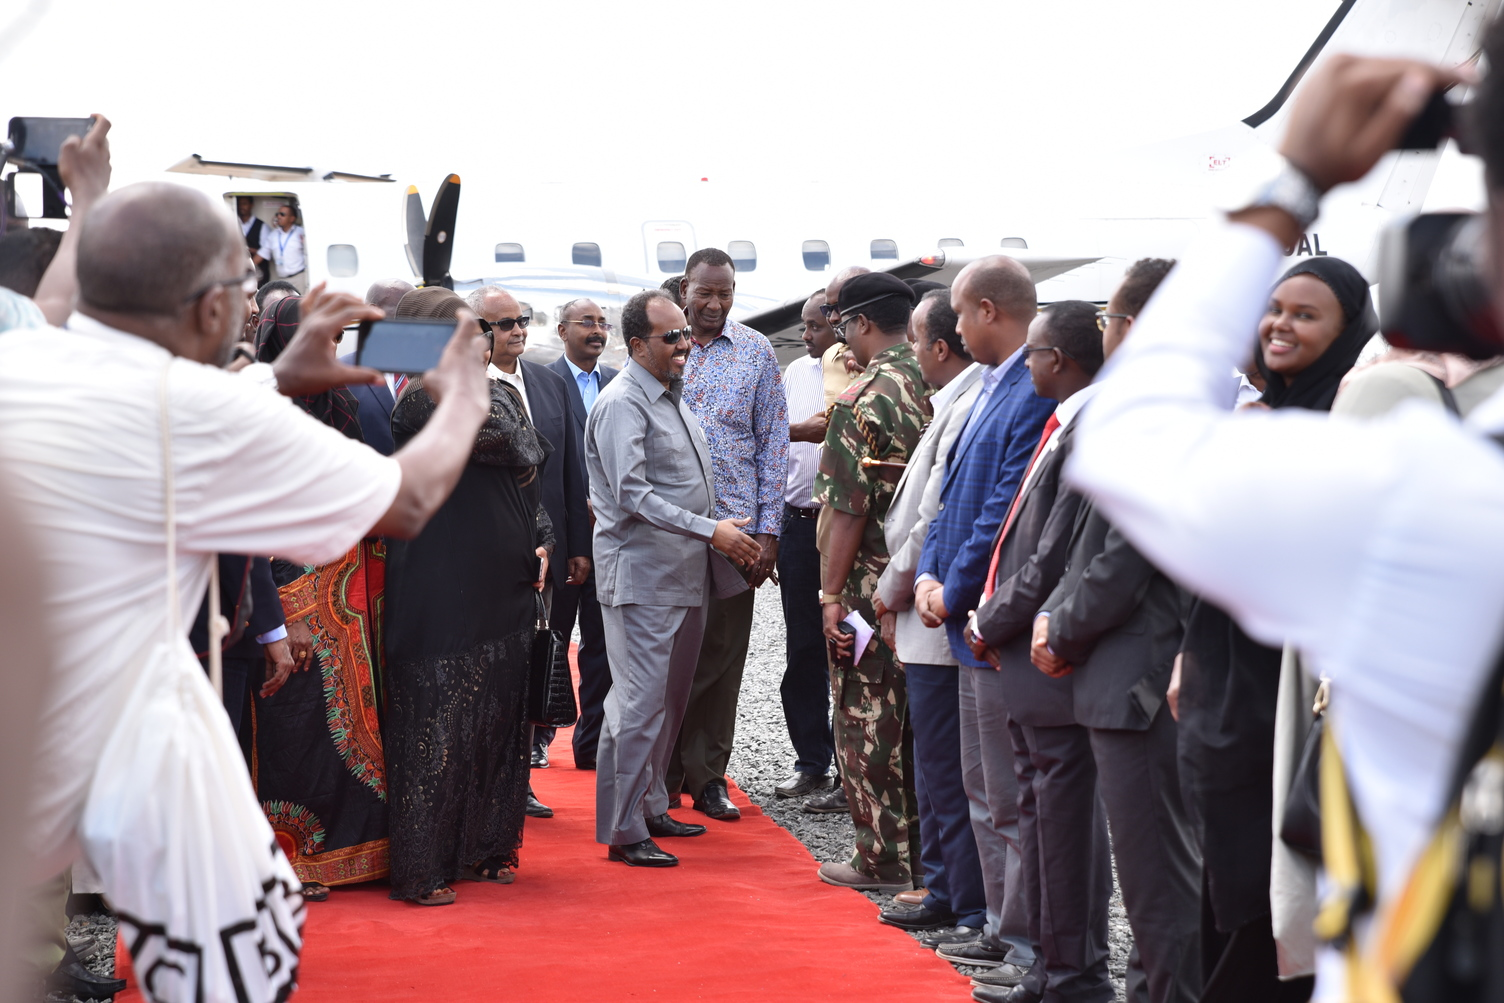 Somali President calls for any refugee returns from Dadaab to be carried out in an orderly manner